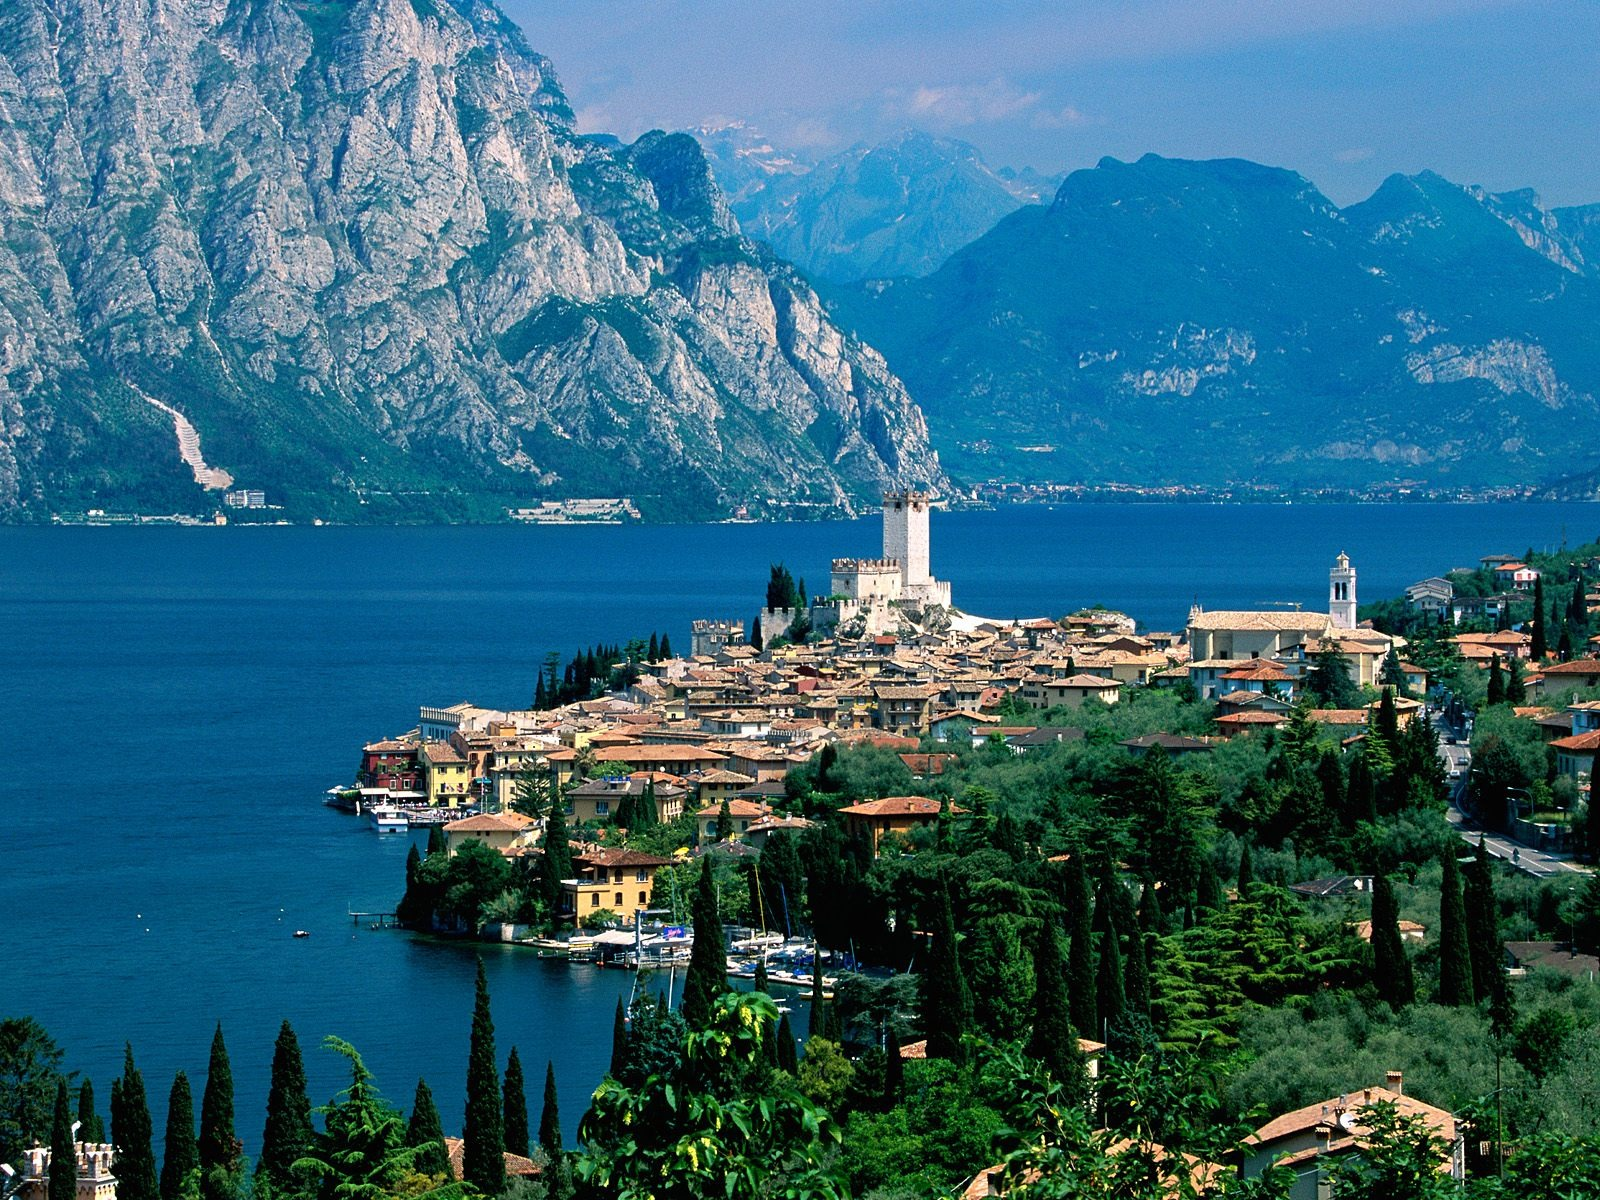 Wallpapers Of Italy Lake Garda Wallpaper Italy World Wallpapers In Jpg Format For Free